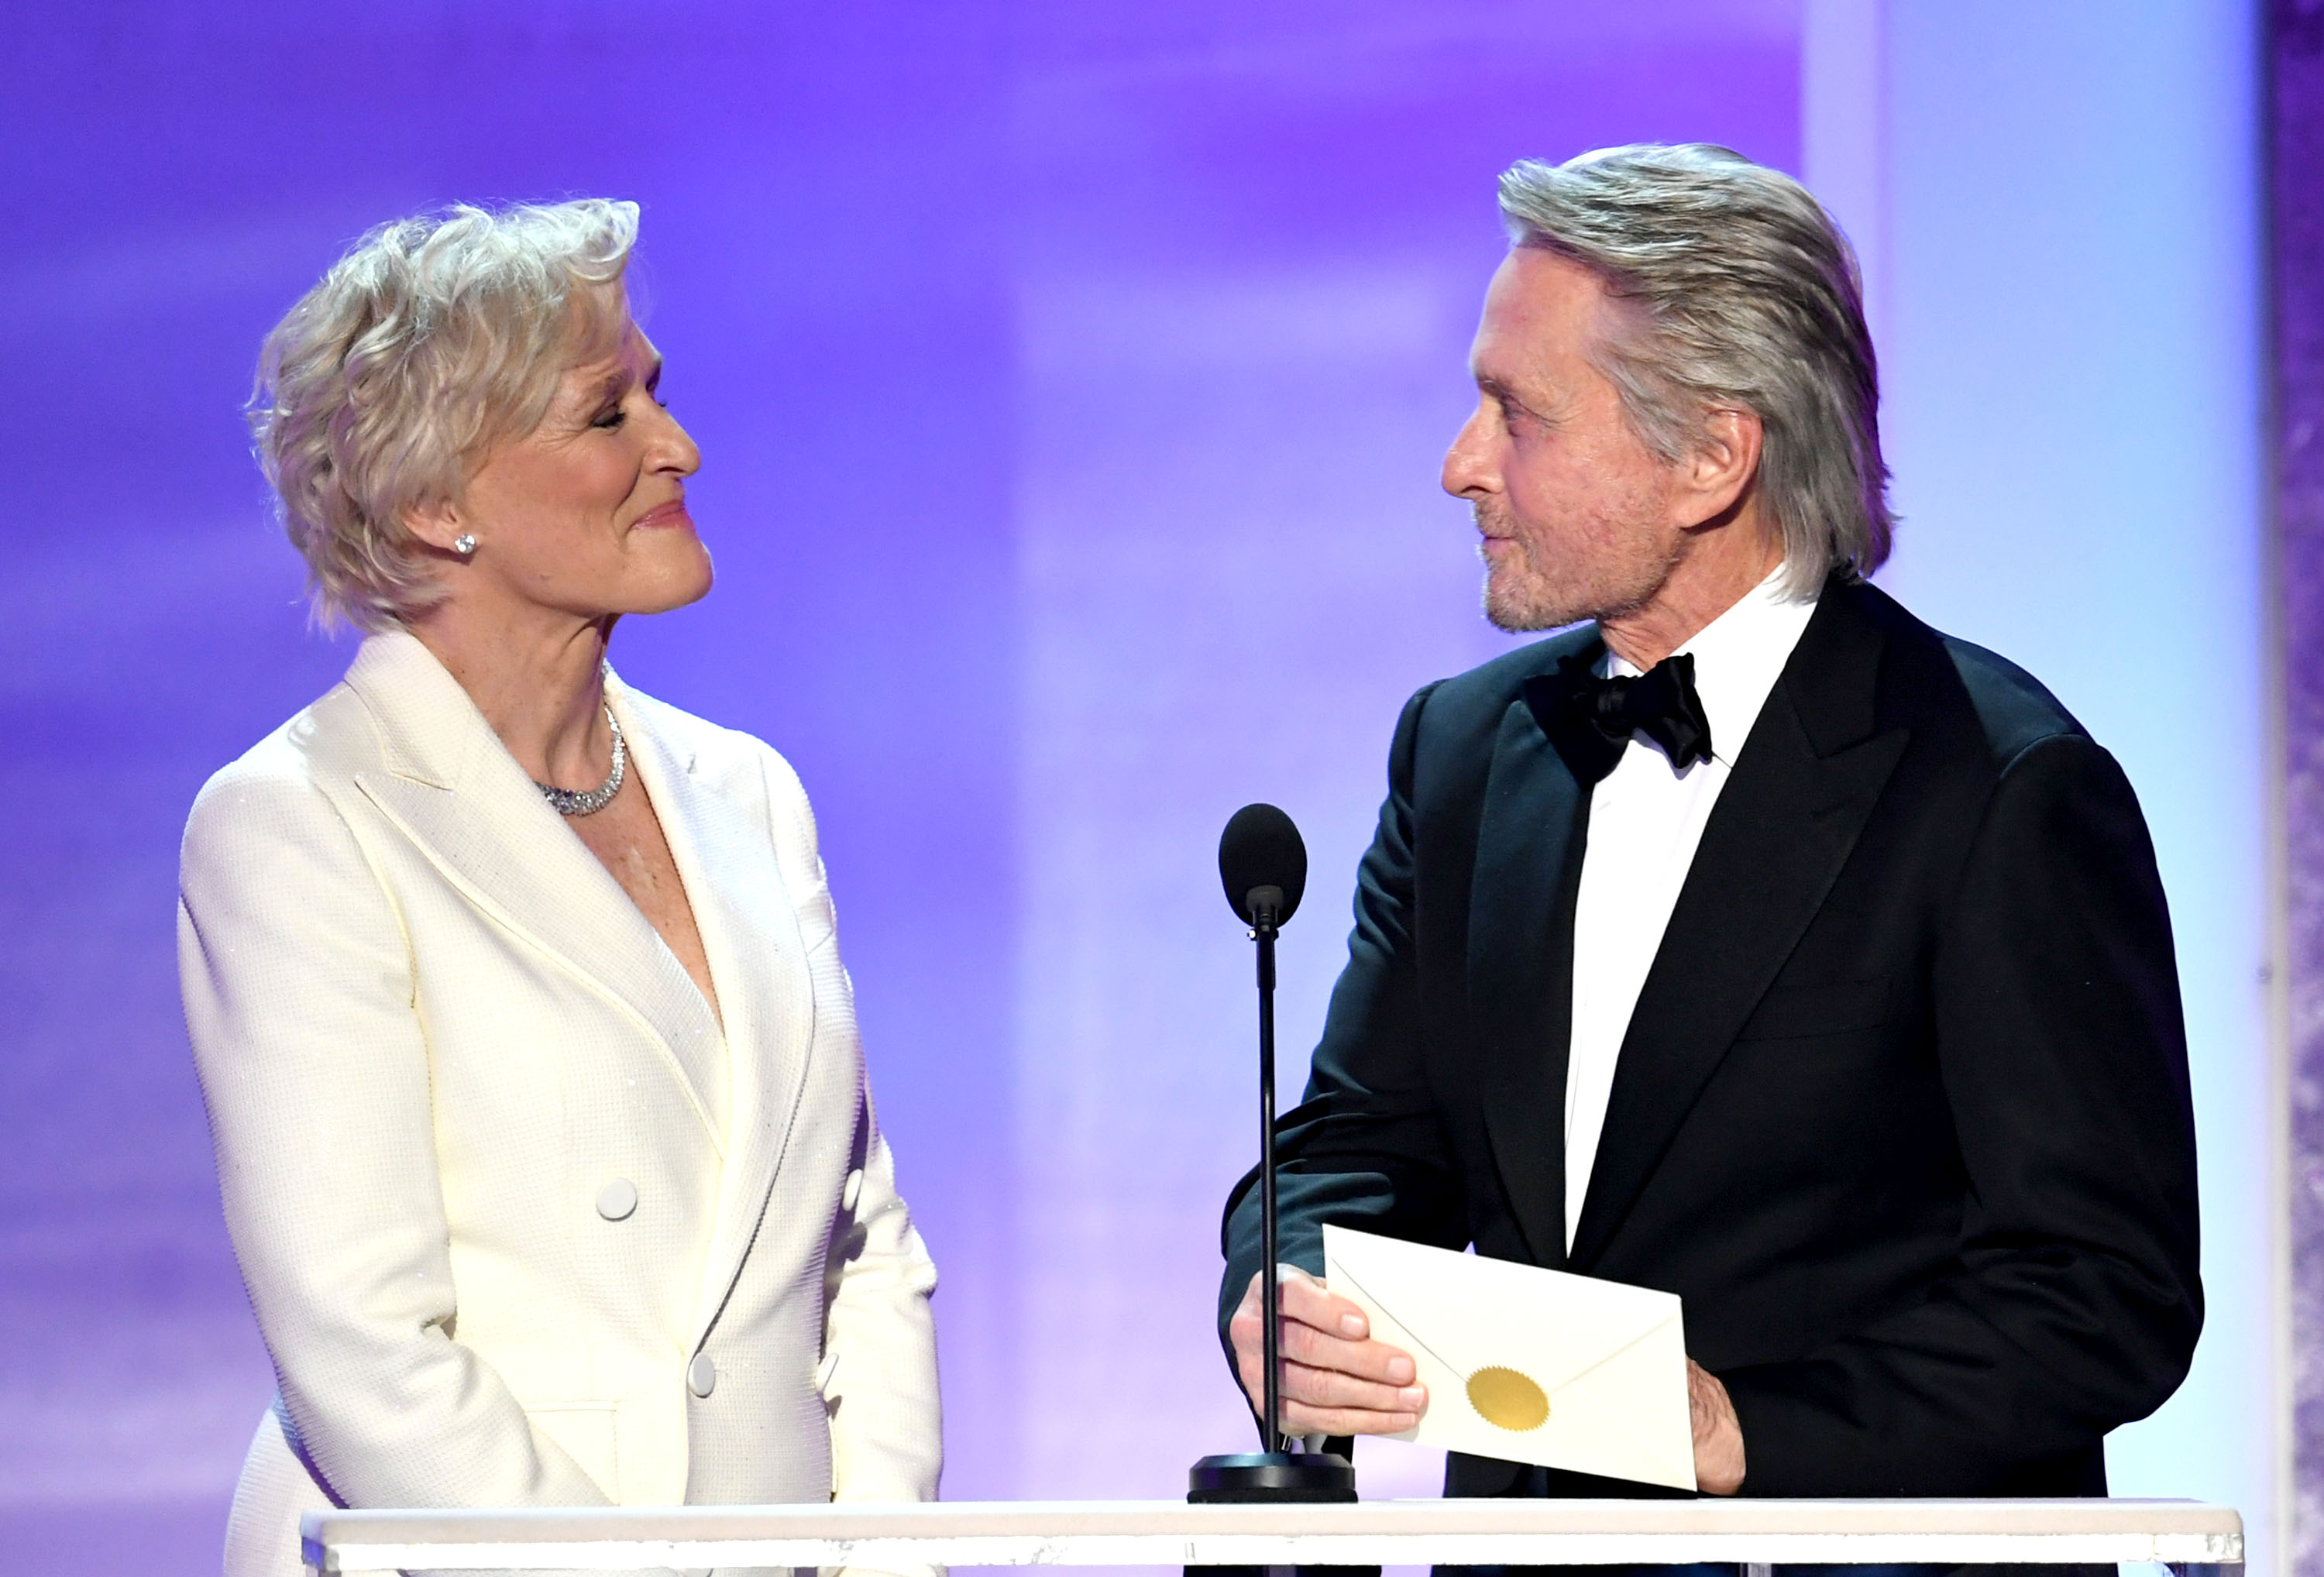 "LOS ANGELES, CALIFORNIA - JANUARY 27: Glenn Close and Michael Douglas speak onstage during the 25th Annual Screen Actors Guild Awards at The Shrine Auditorium on January 27, 2019 in Los Angeles, California. The presentation served as a reunion of sorts for the ""Fatal Attraction"" stars, the 1987 movie that solidified stardom for both. (Photo by Kevin Winter/Getty Images for Turner)"